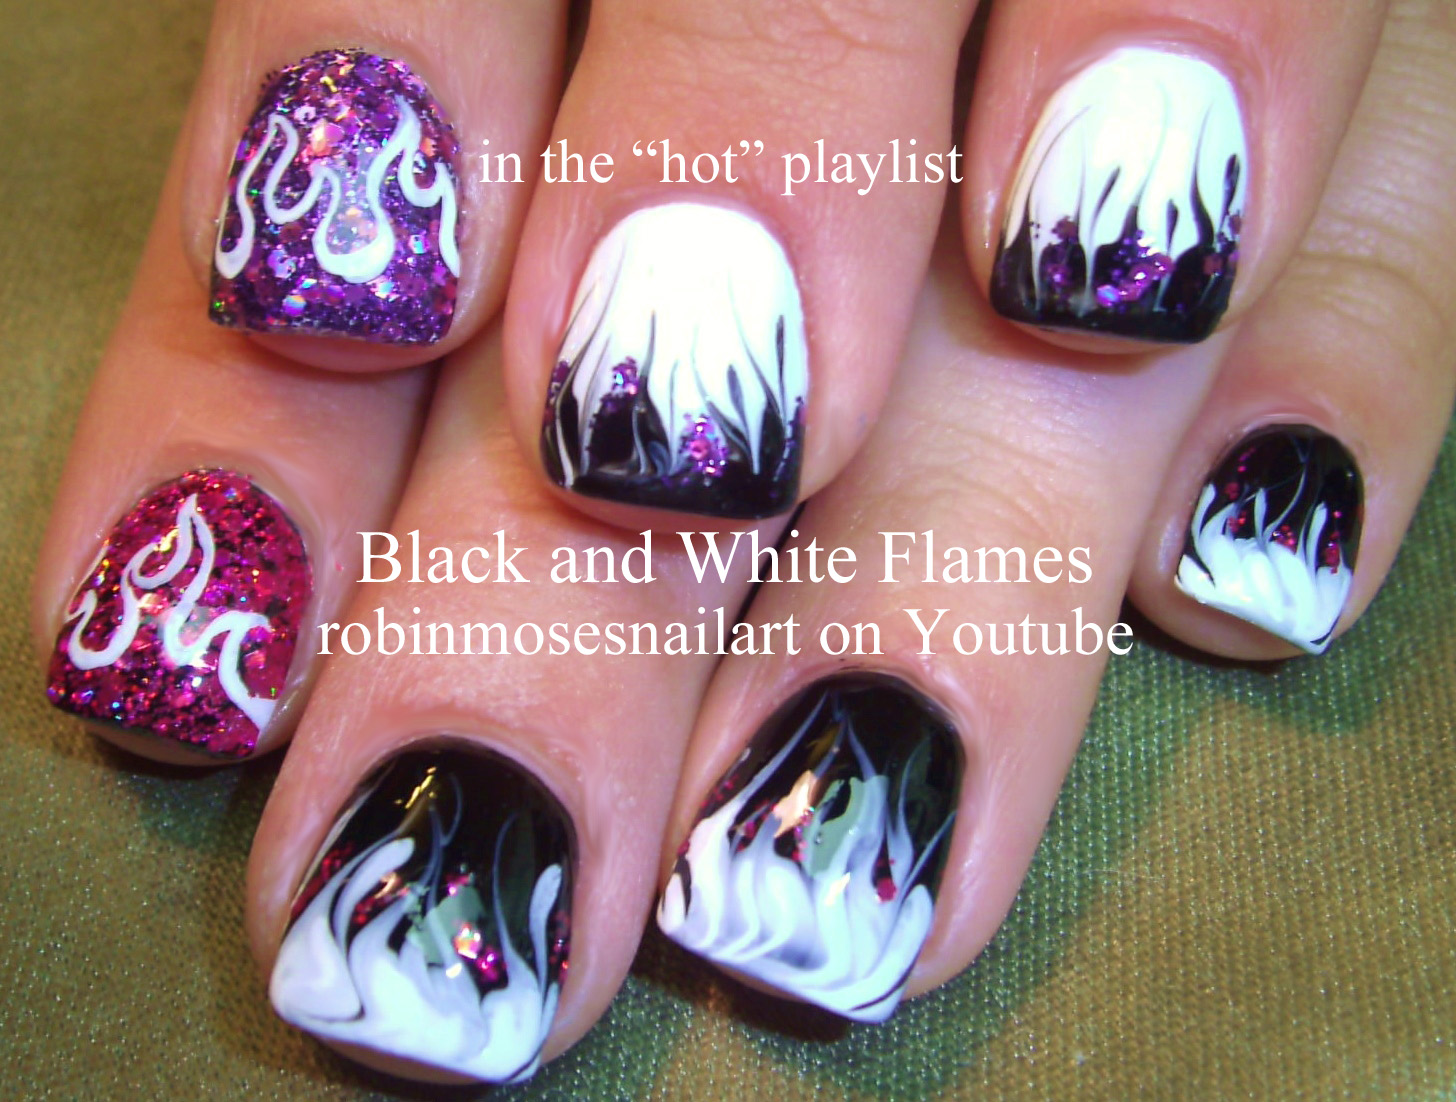 Robin moses nail art black and white flames pink and purple black and white flames pink and purple glitter purple glitter nails pink glitter nails flame nails black flame nails abelone nail art abelone mani prinsesfo Images